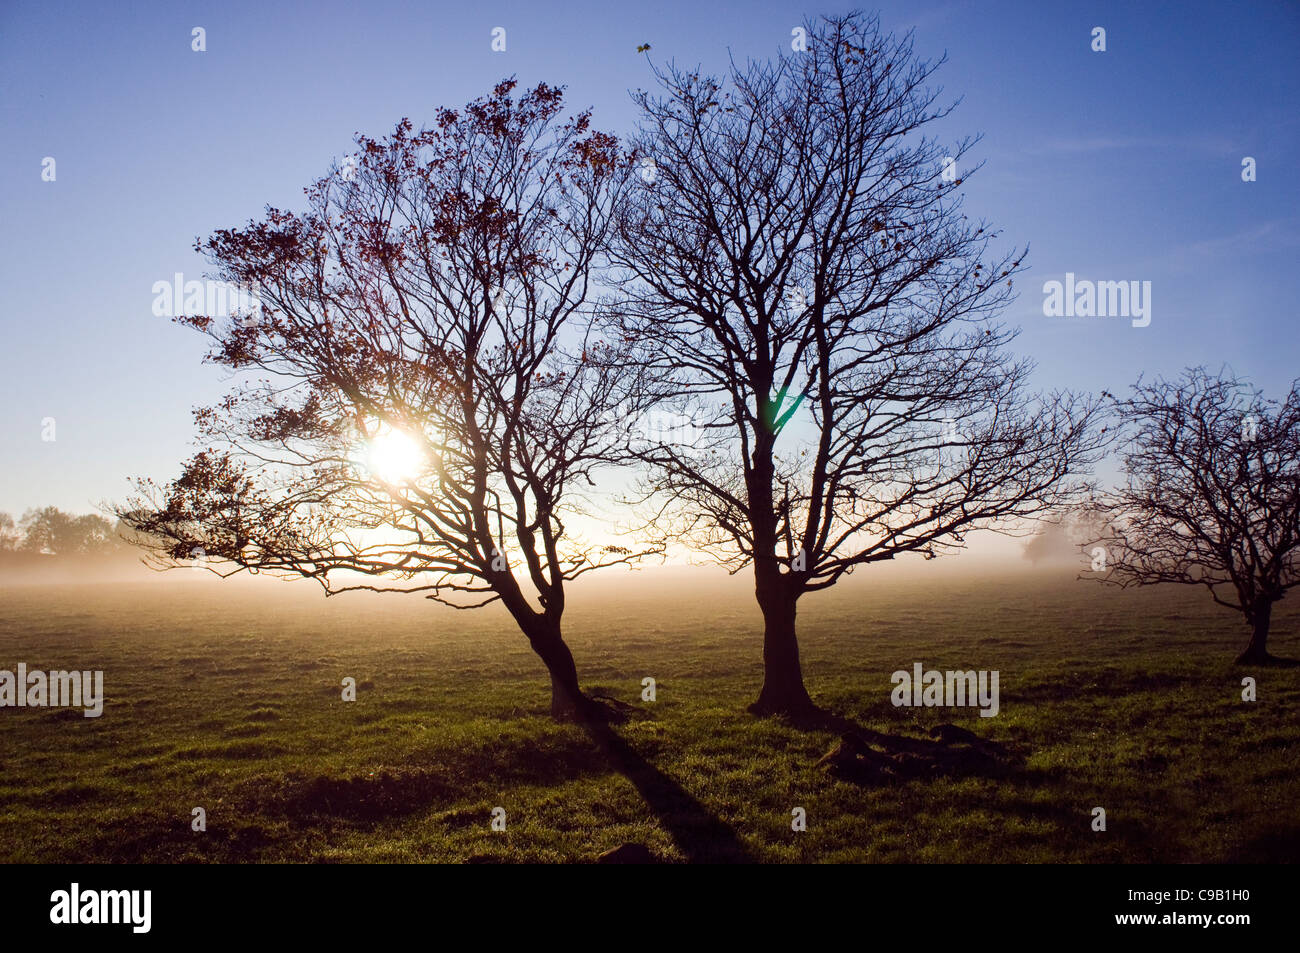 TWO BARE TREES IN WINTER SUNSHINE - Stock Image